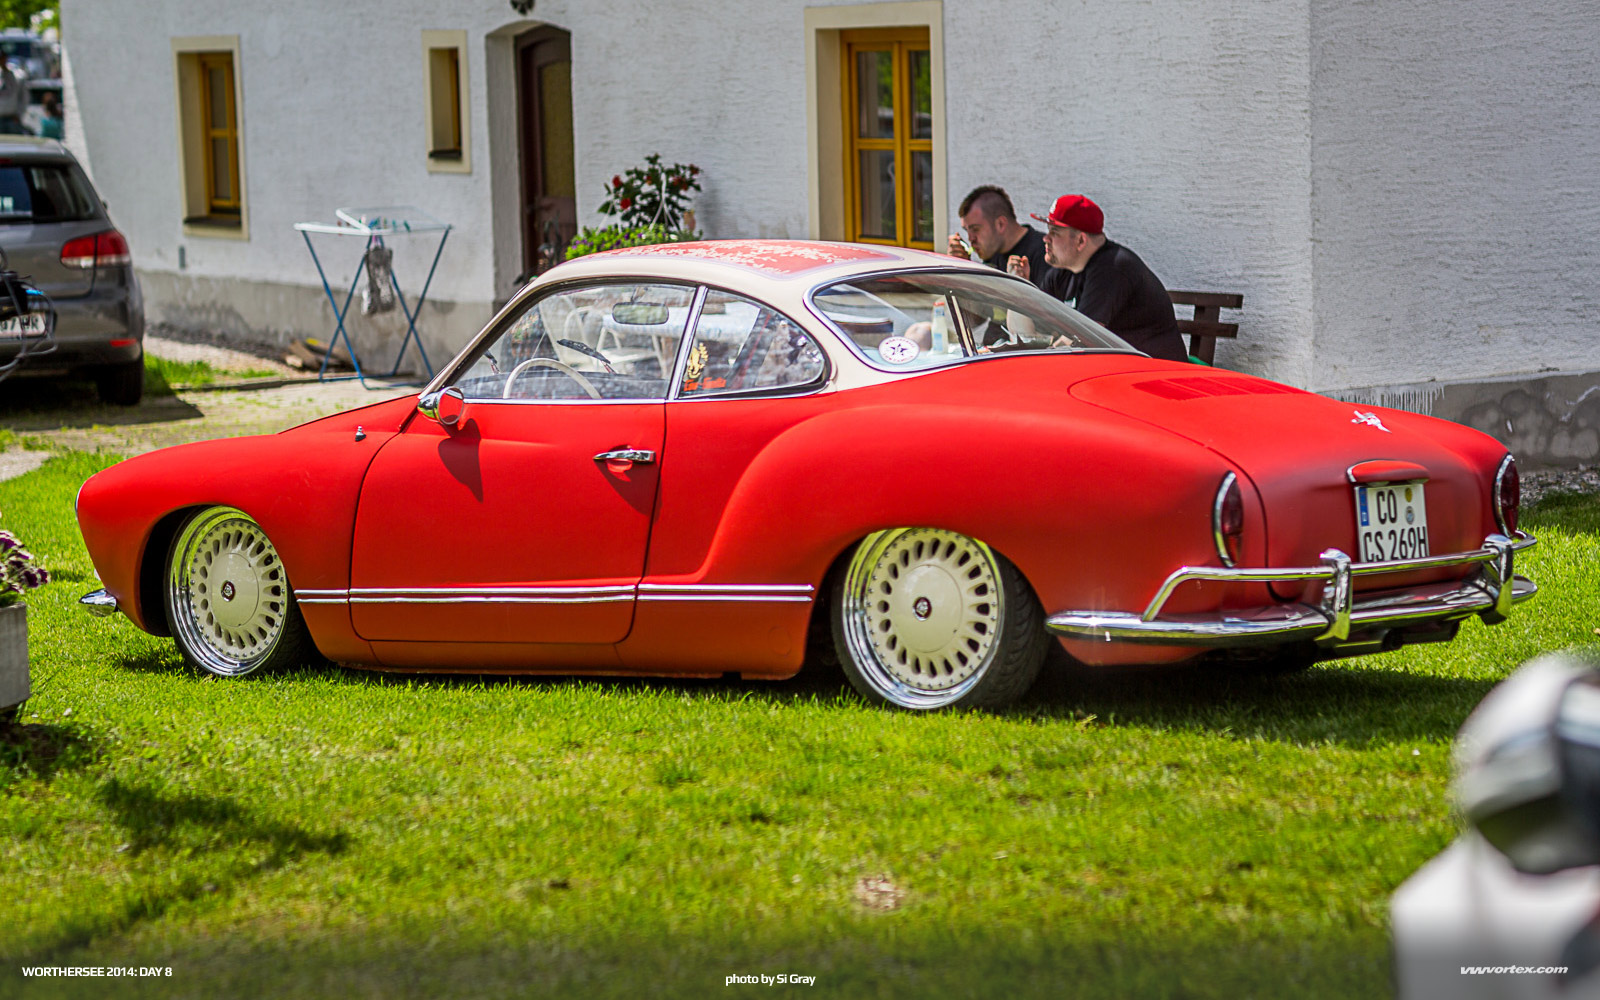 2014-Worthersee-Day-8-Si-Gray-1101